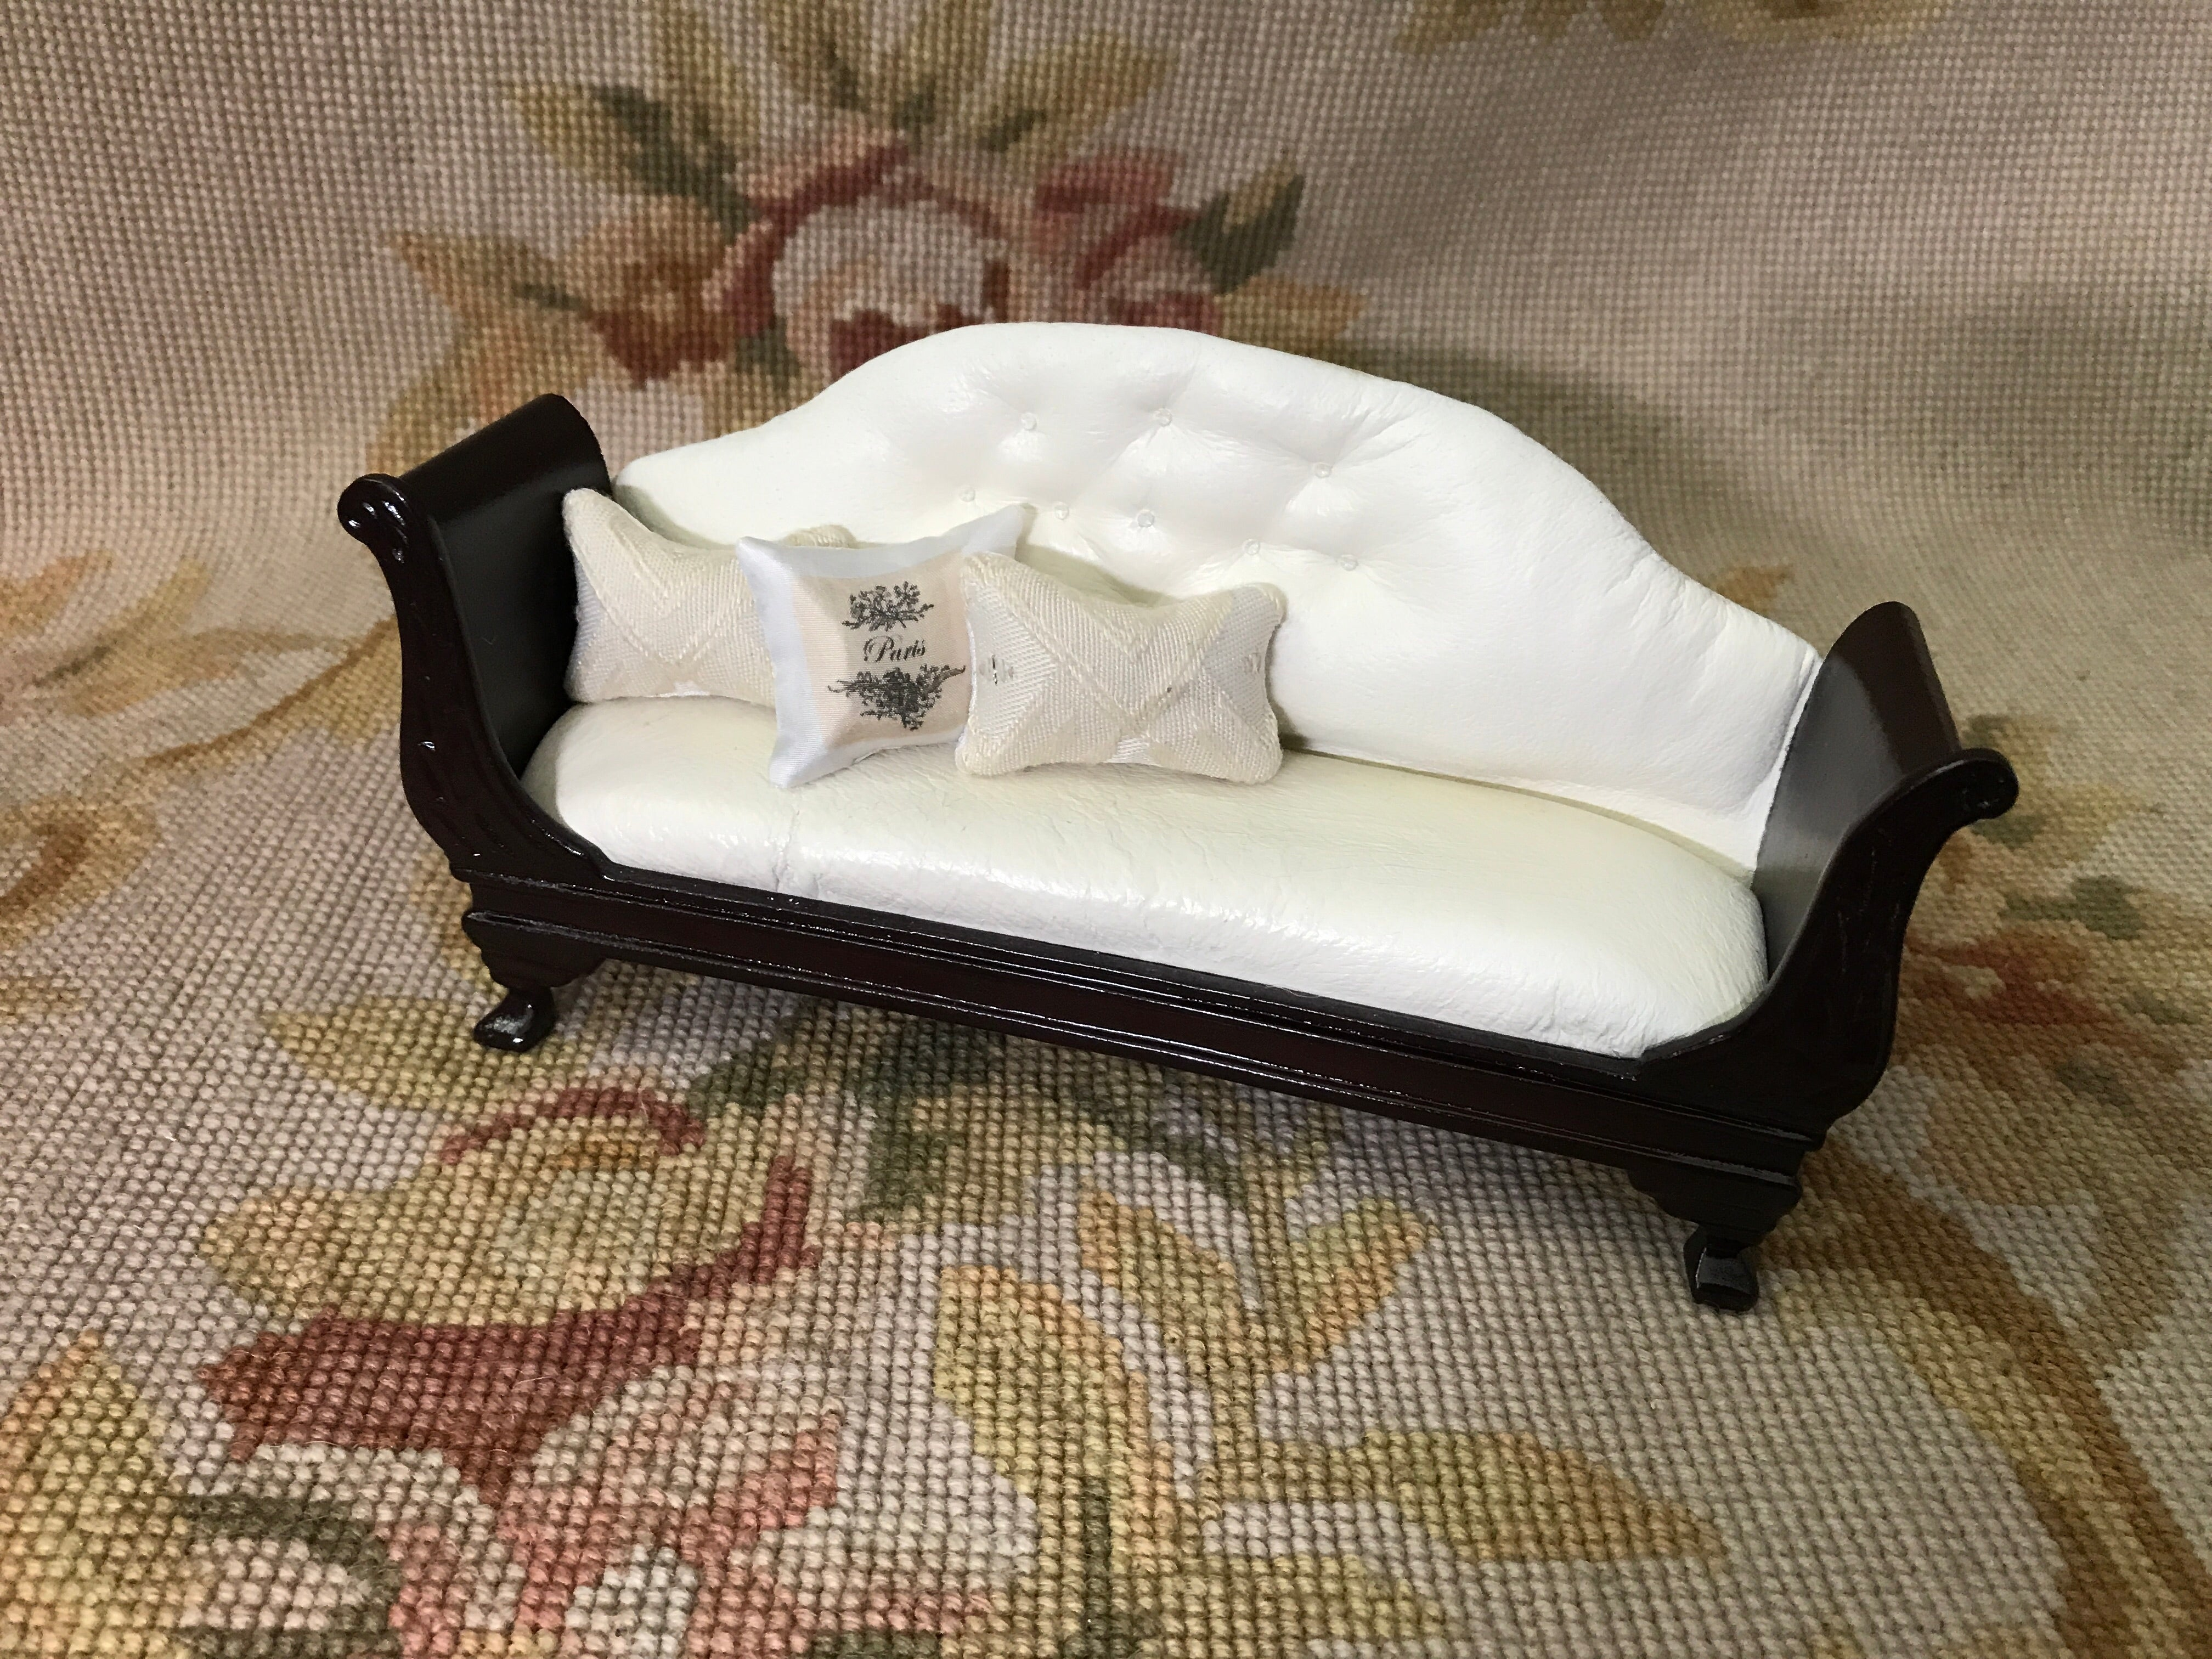 Copy of Bespaq Sofa Seat Couch Chaise Lounge Settee with Pillows 1:12 Dollhouse Miniature